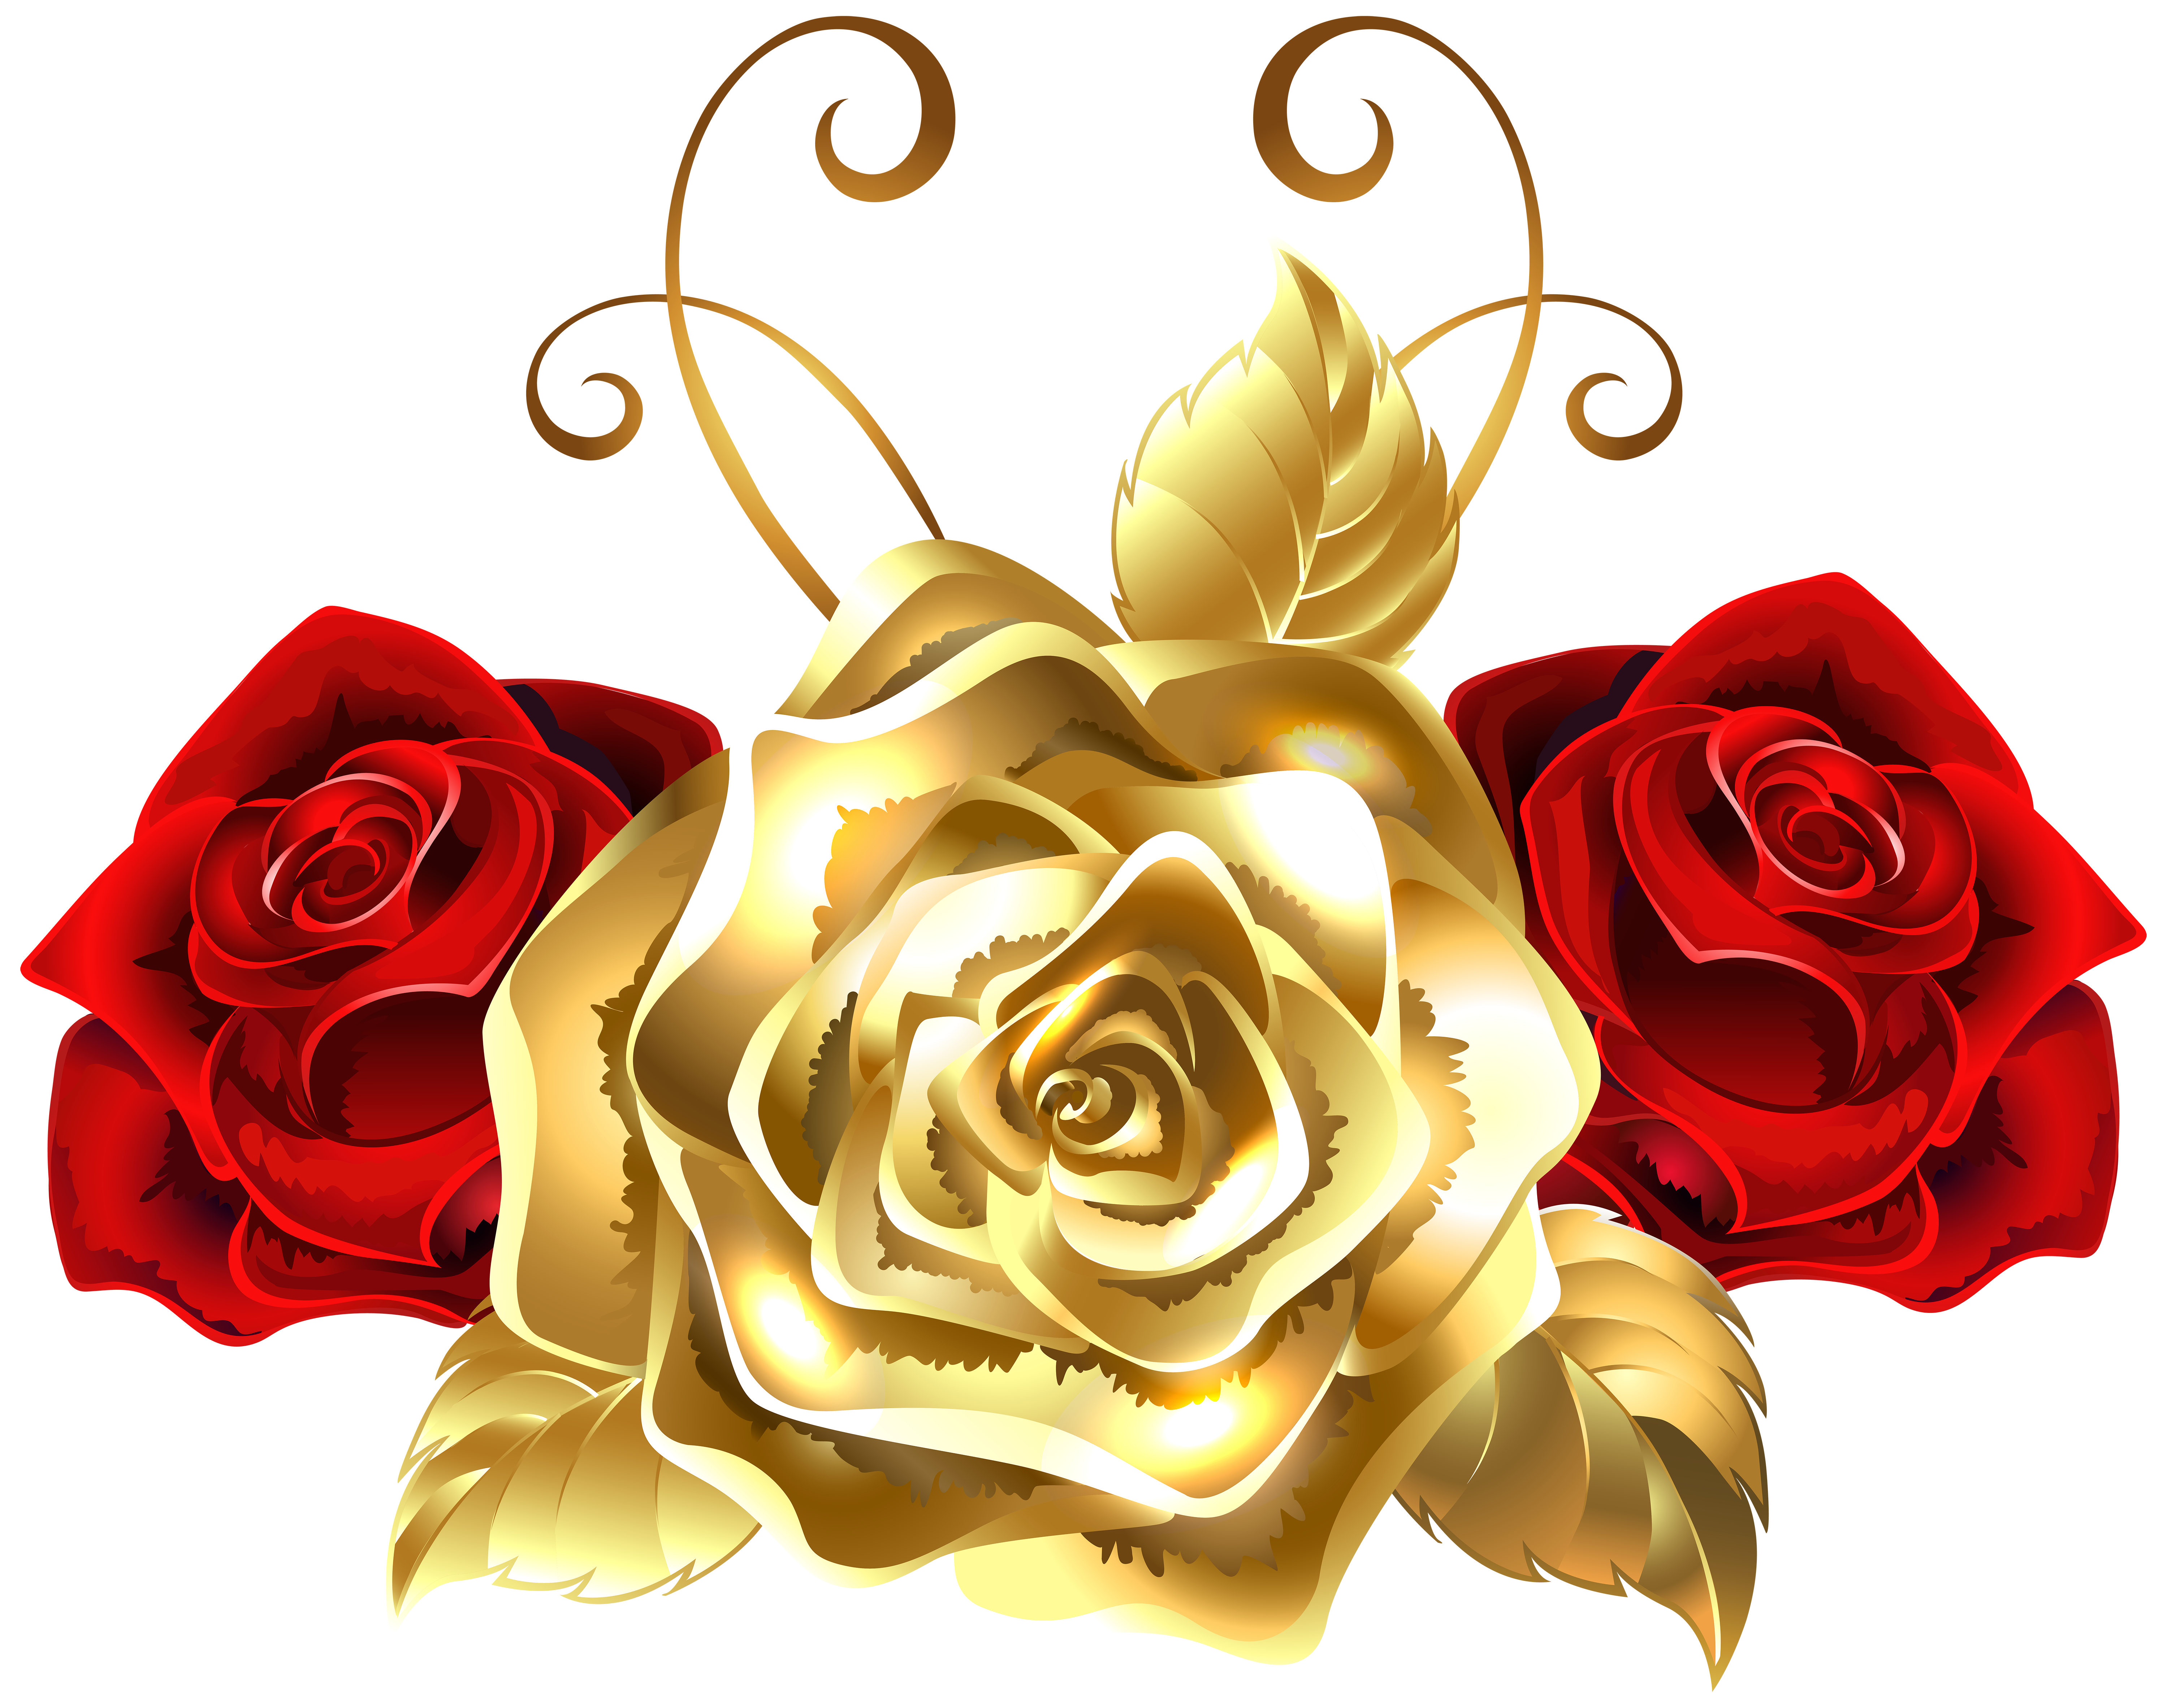 Gold and Red Roses PNG Clip Art Image.